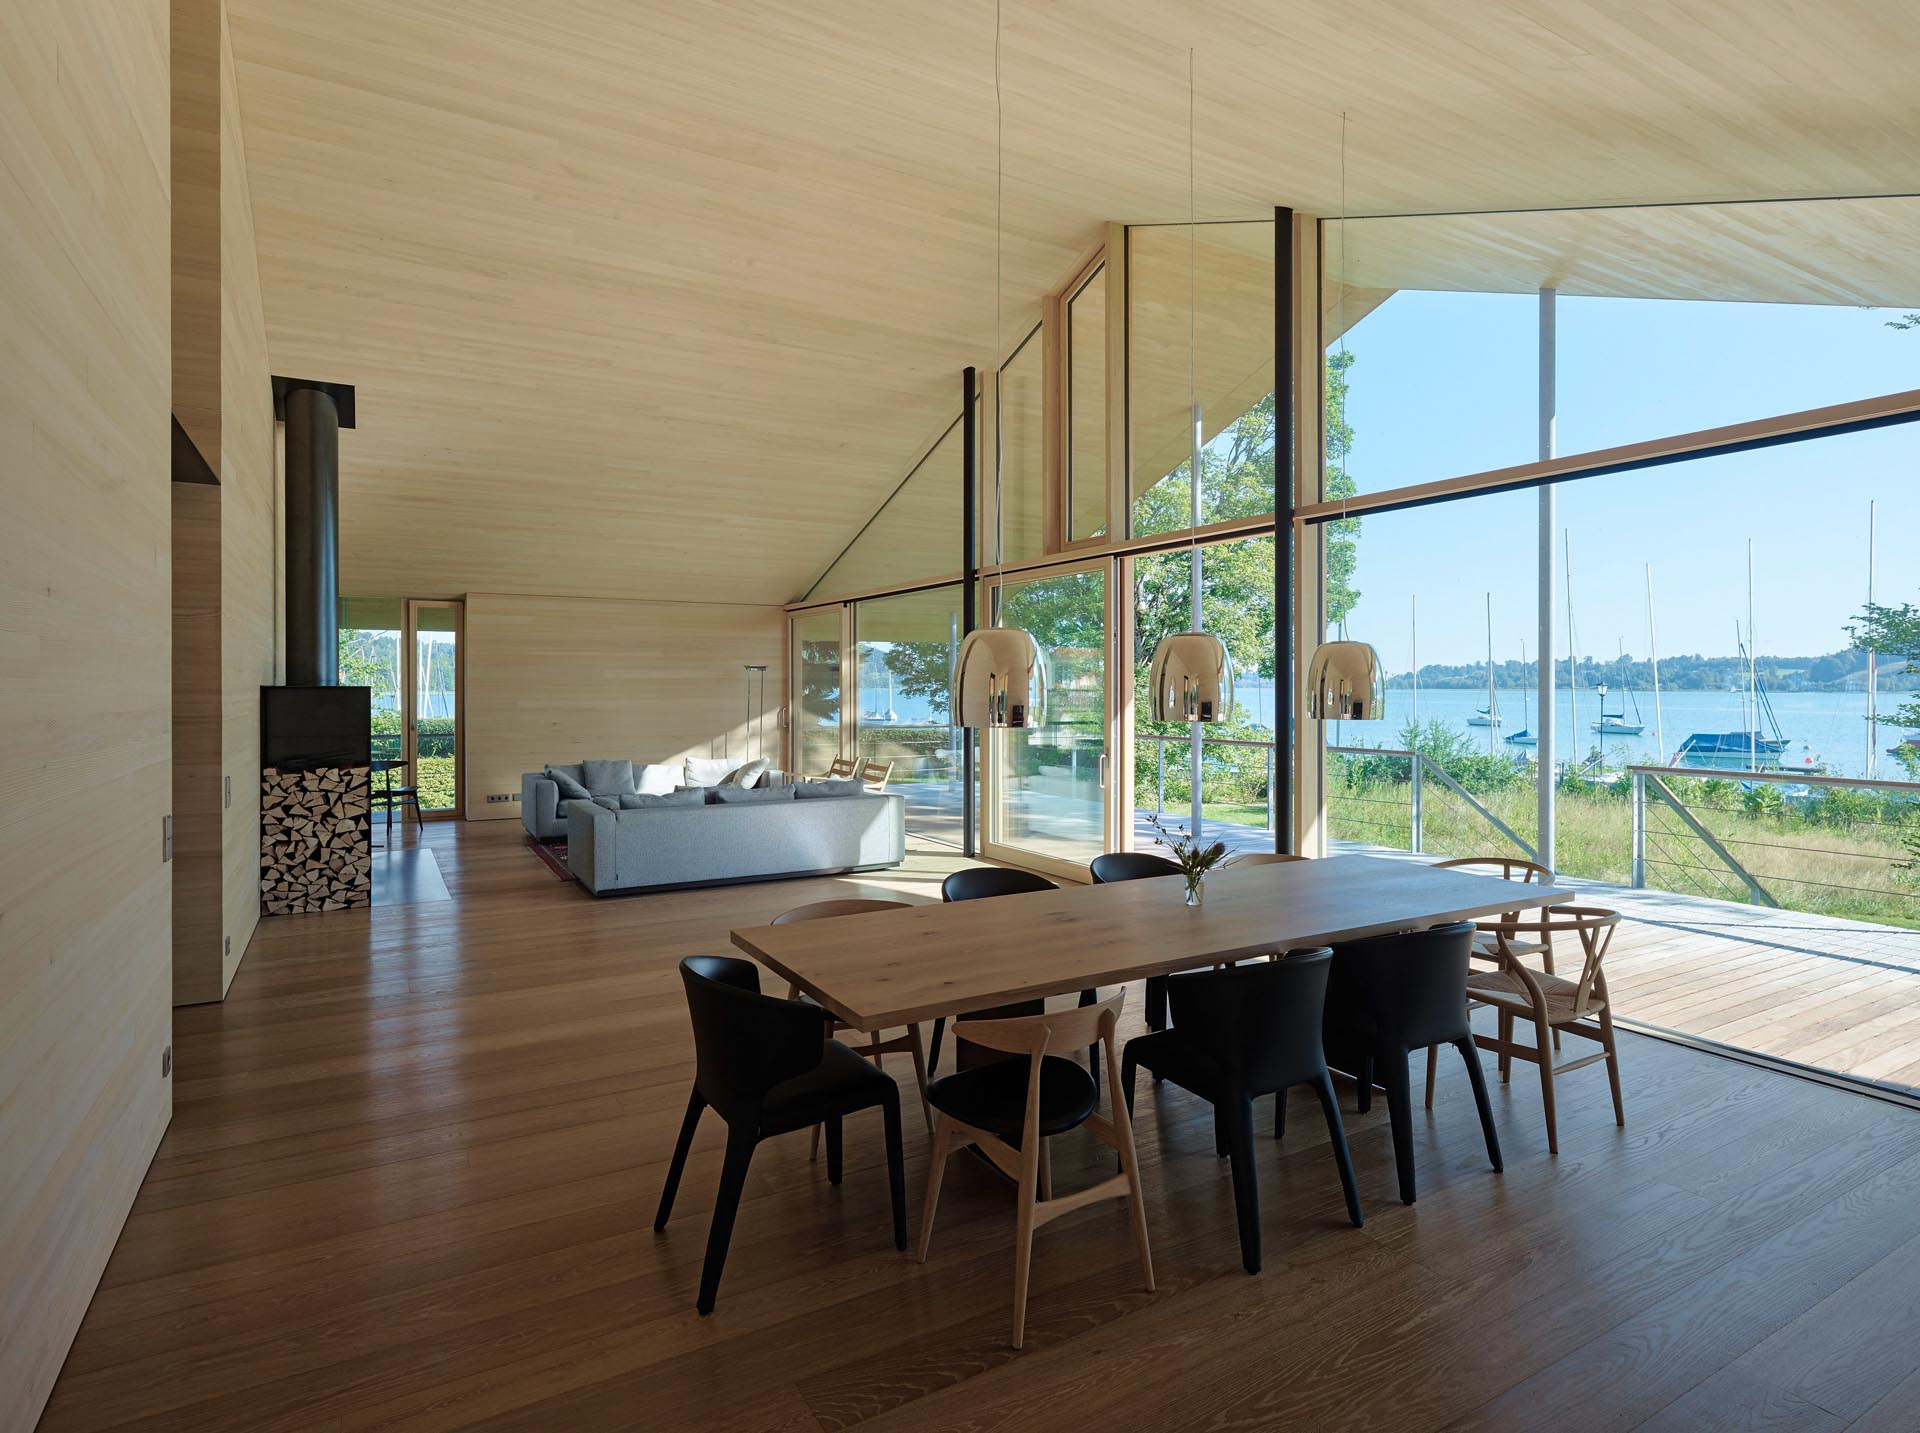 An open plan living room and dining room showcases a full wall of windows that look out to the lake and boats.